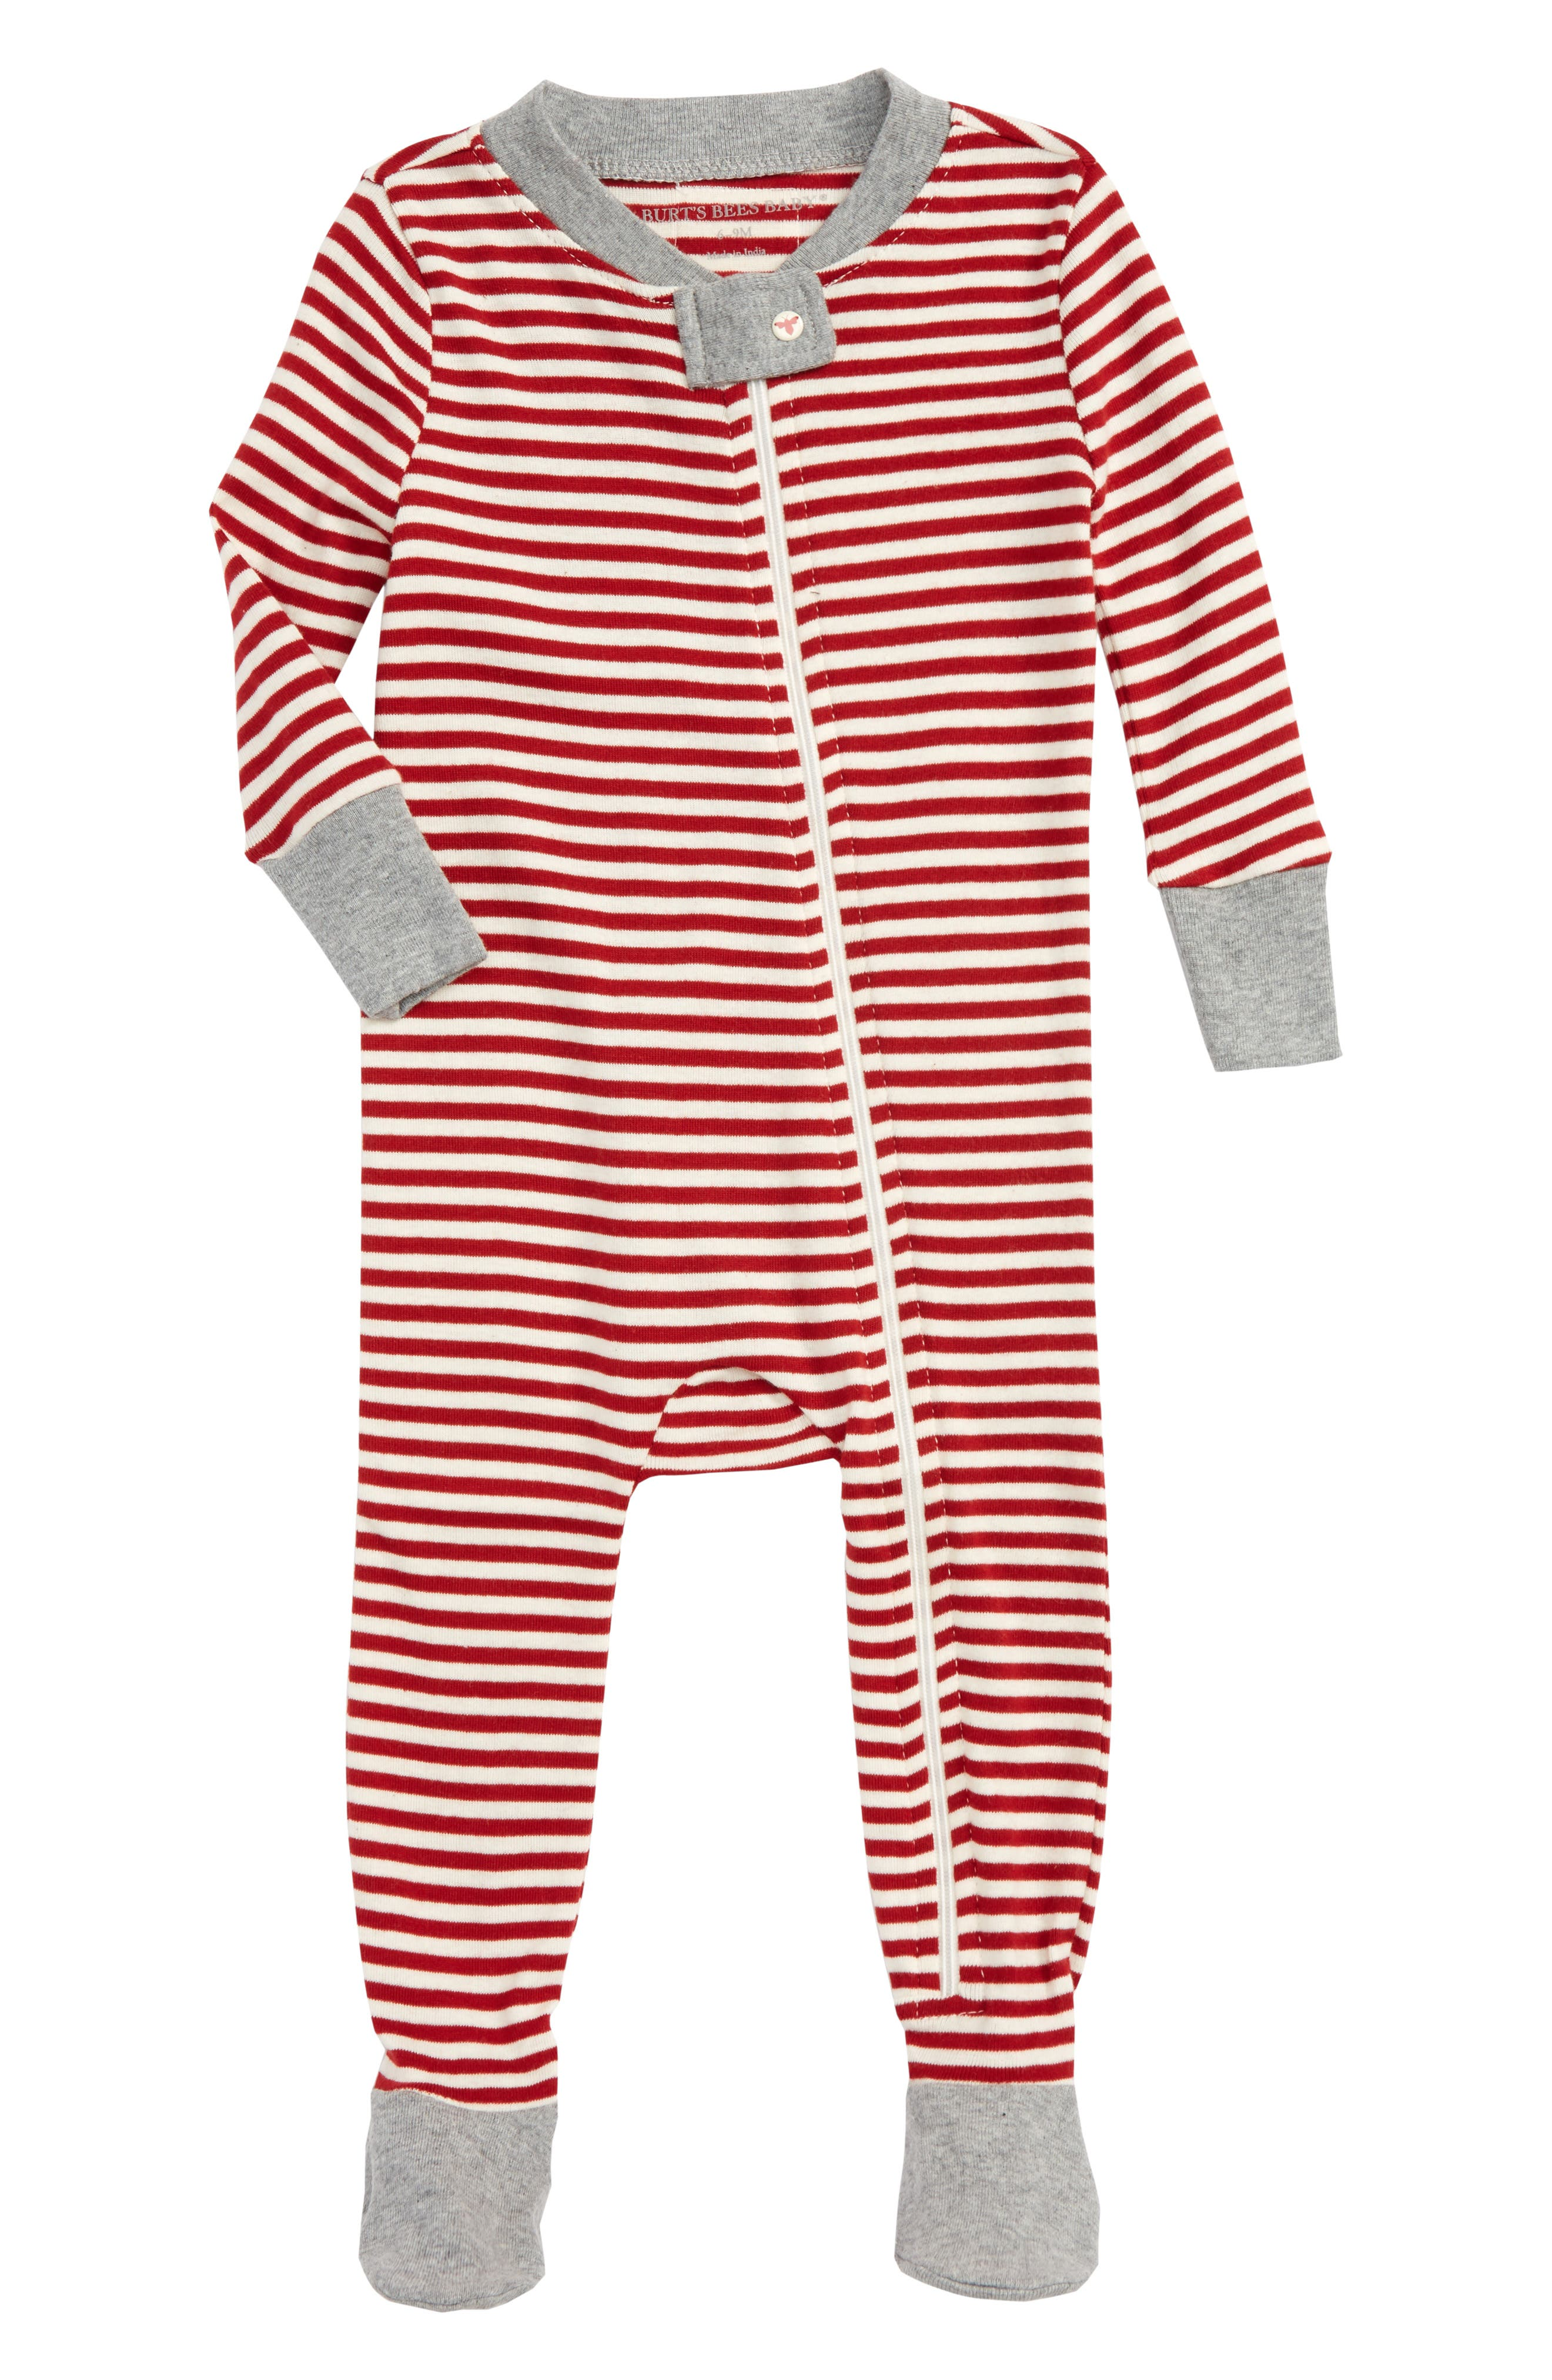 Fitted One-Piece Footie Pajamas,                         Main,                         color, Cranberry